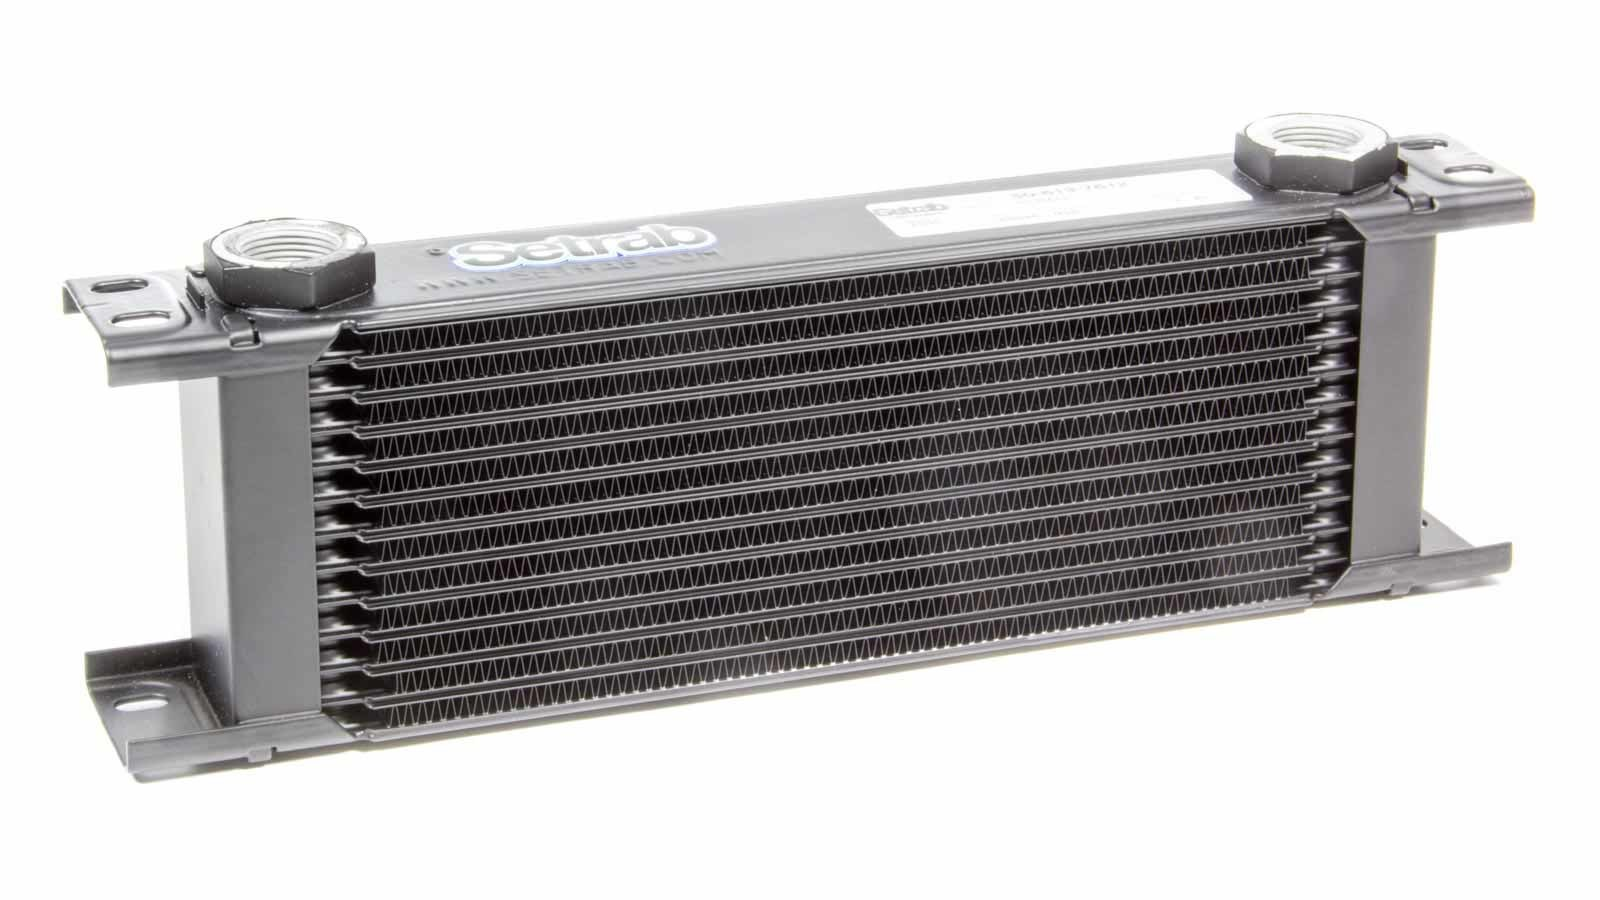 Series-6 Oil Cooler 13 Row w/M22 Ports